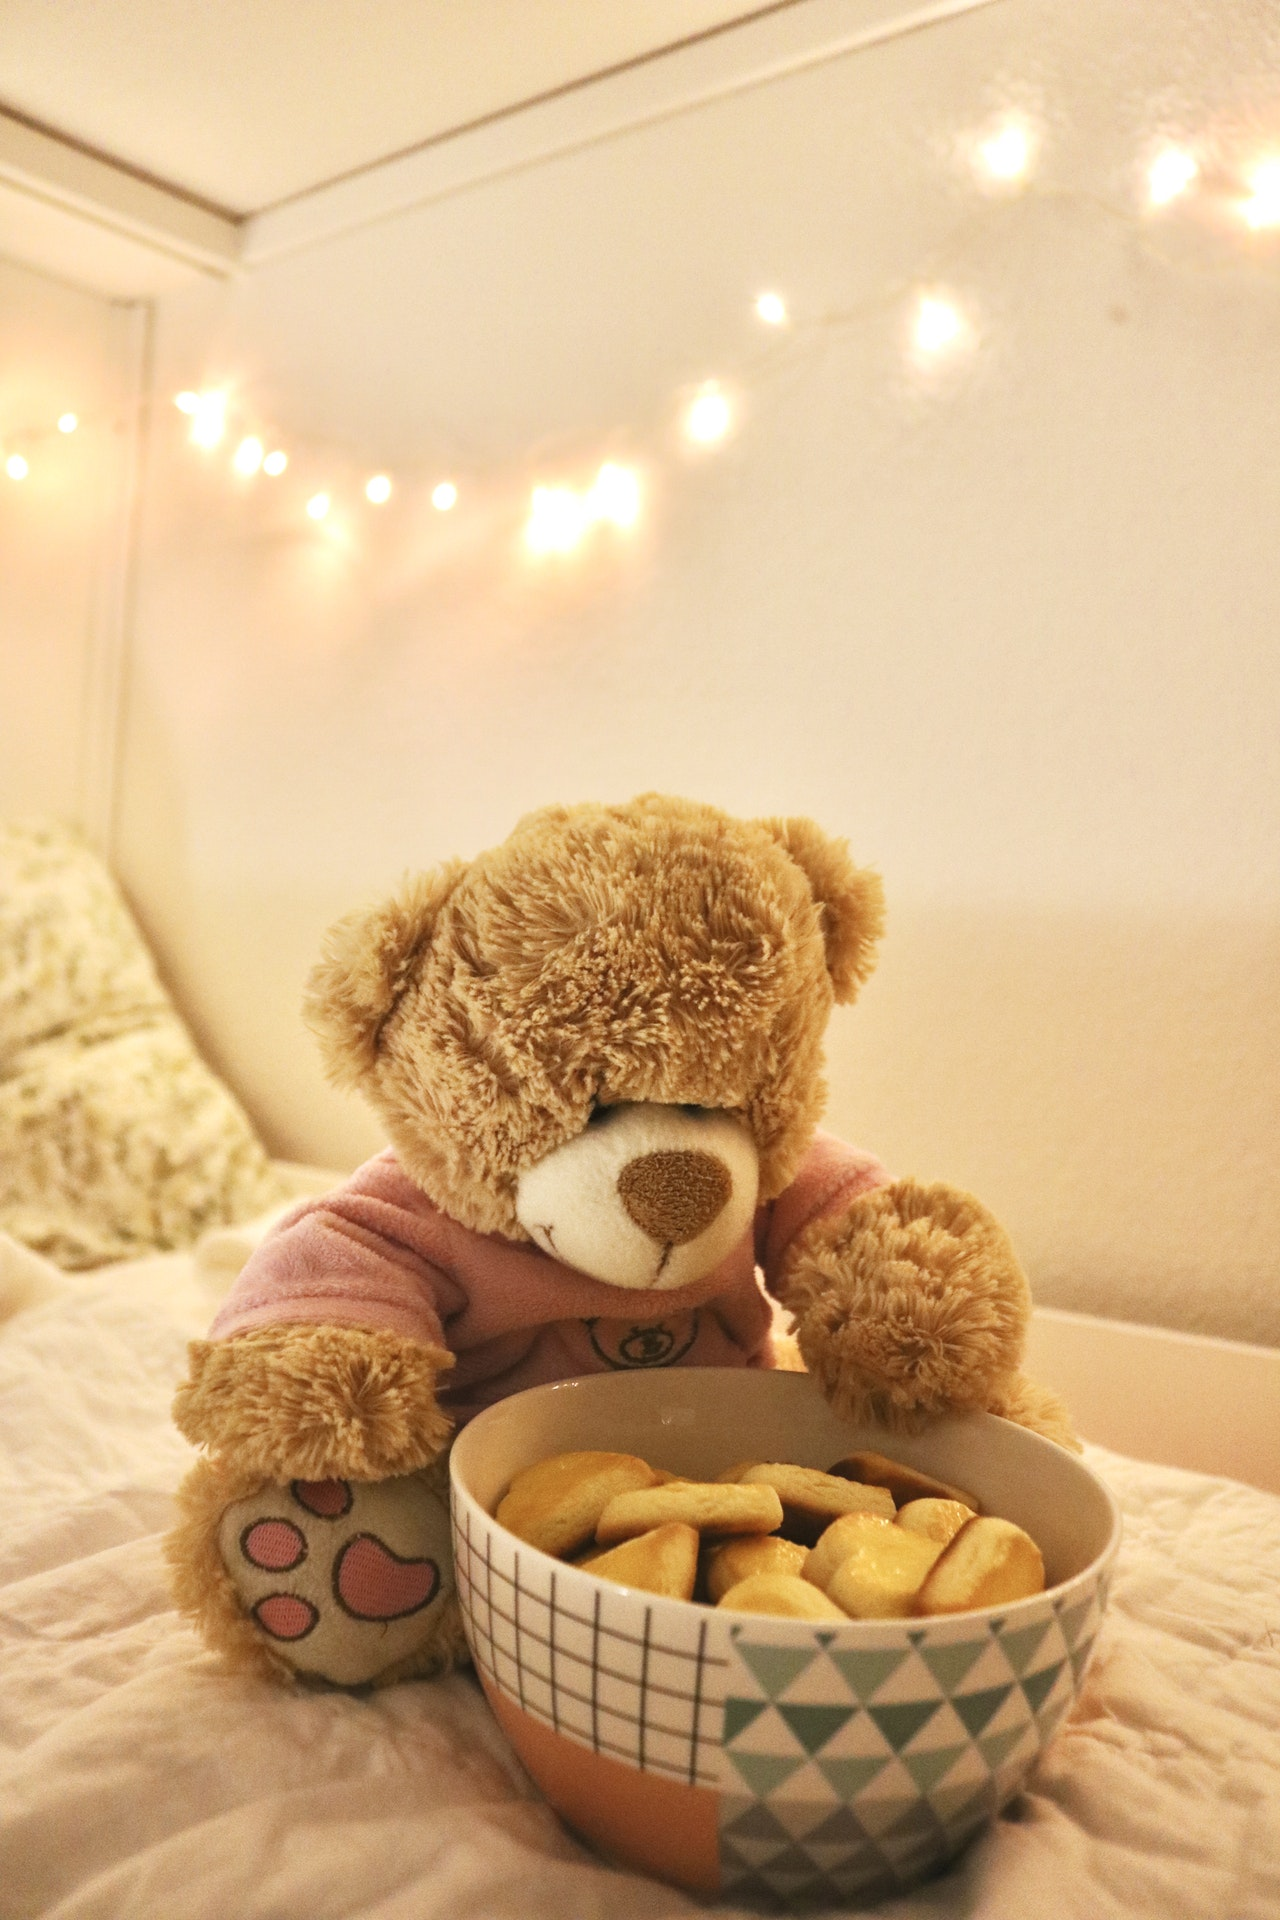 Teddy Bear On Bed With Lights On Wall